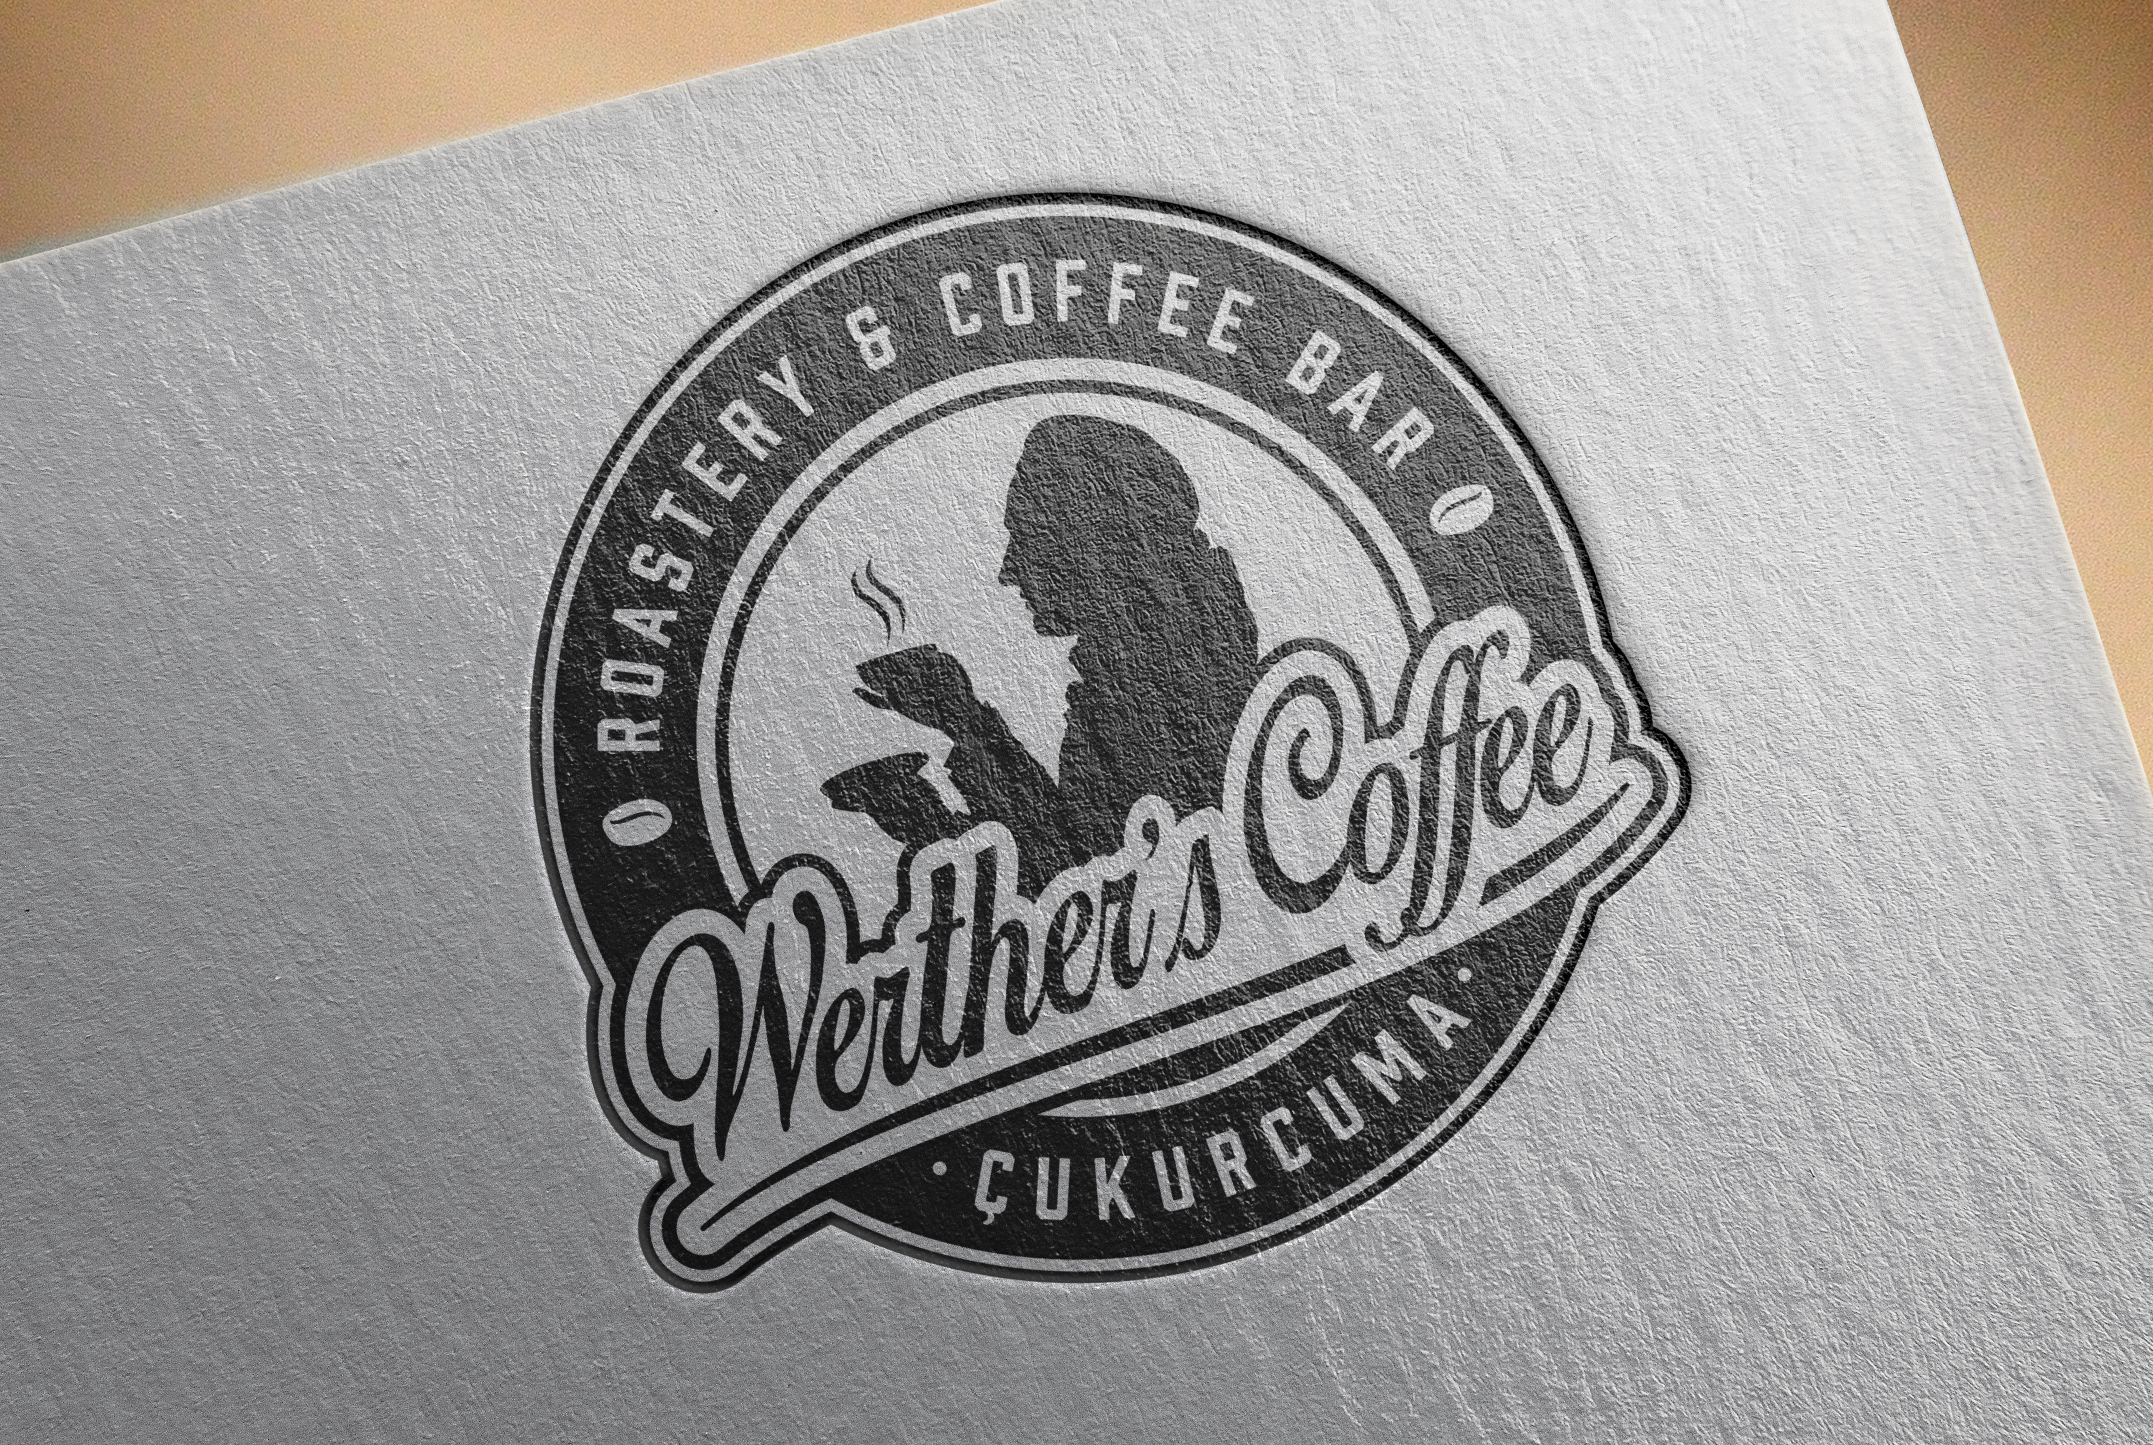 02_Werthers_Coffee_logo_uygulama